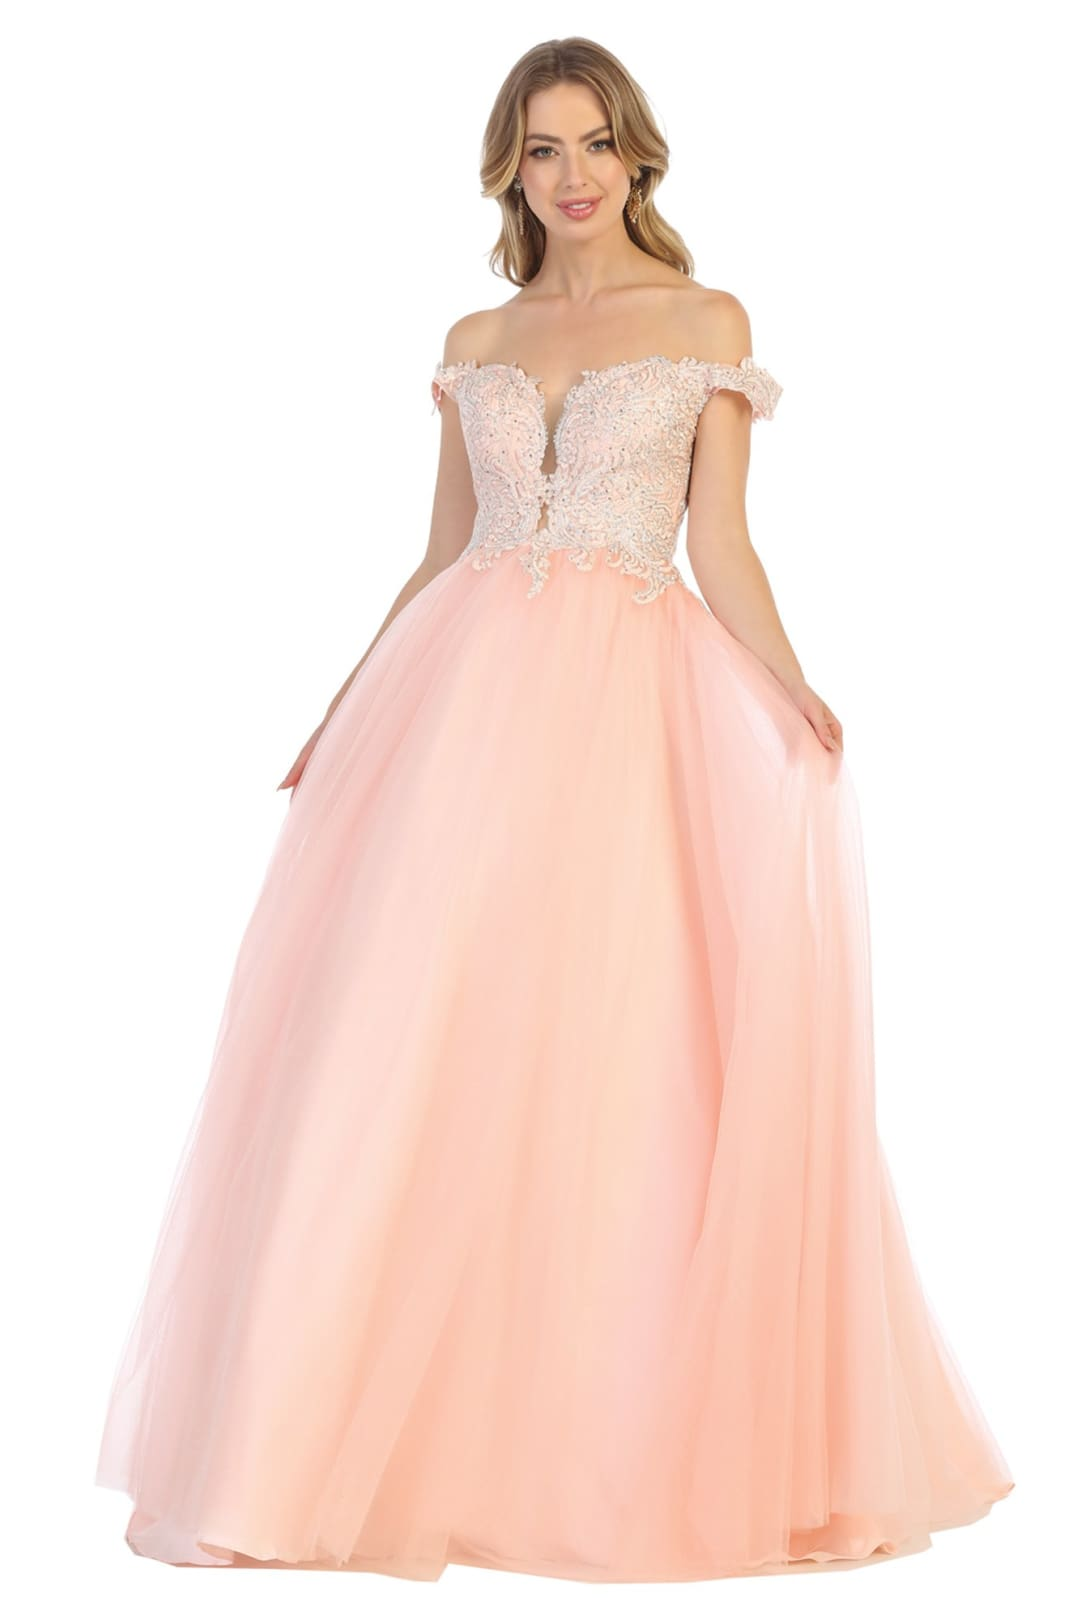 A-line Classy Prom Dress And Plus Size